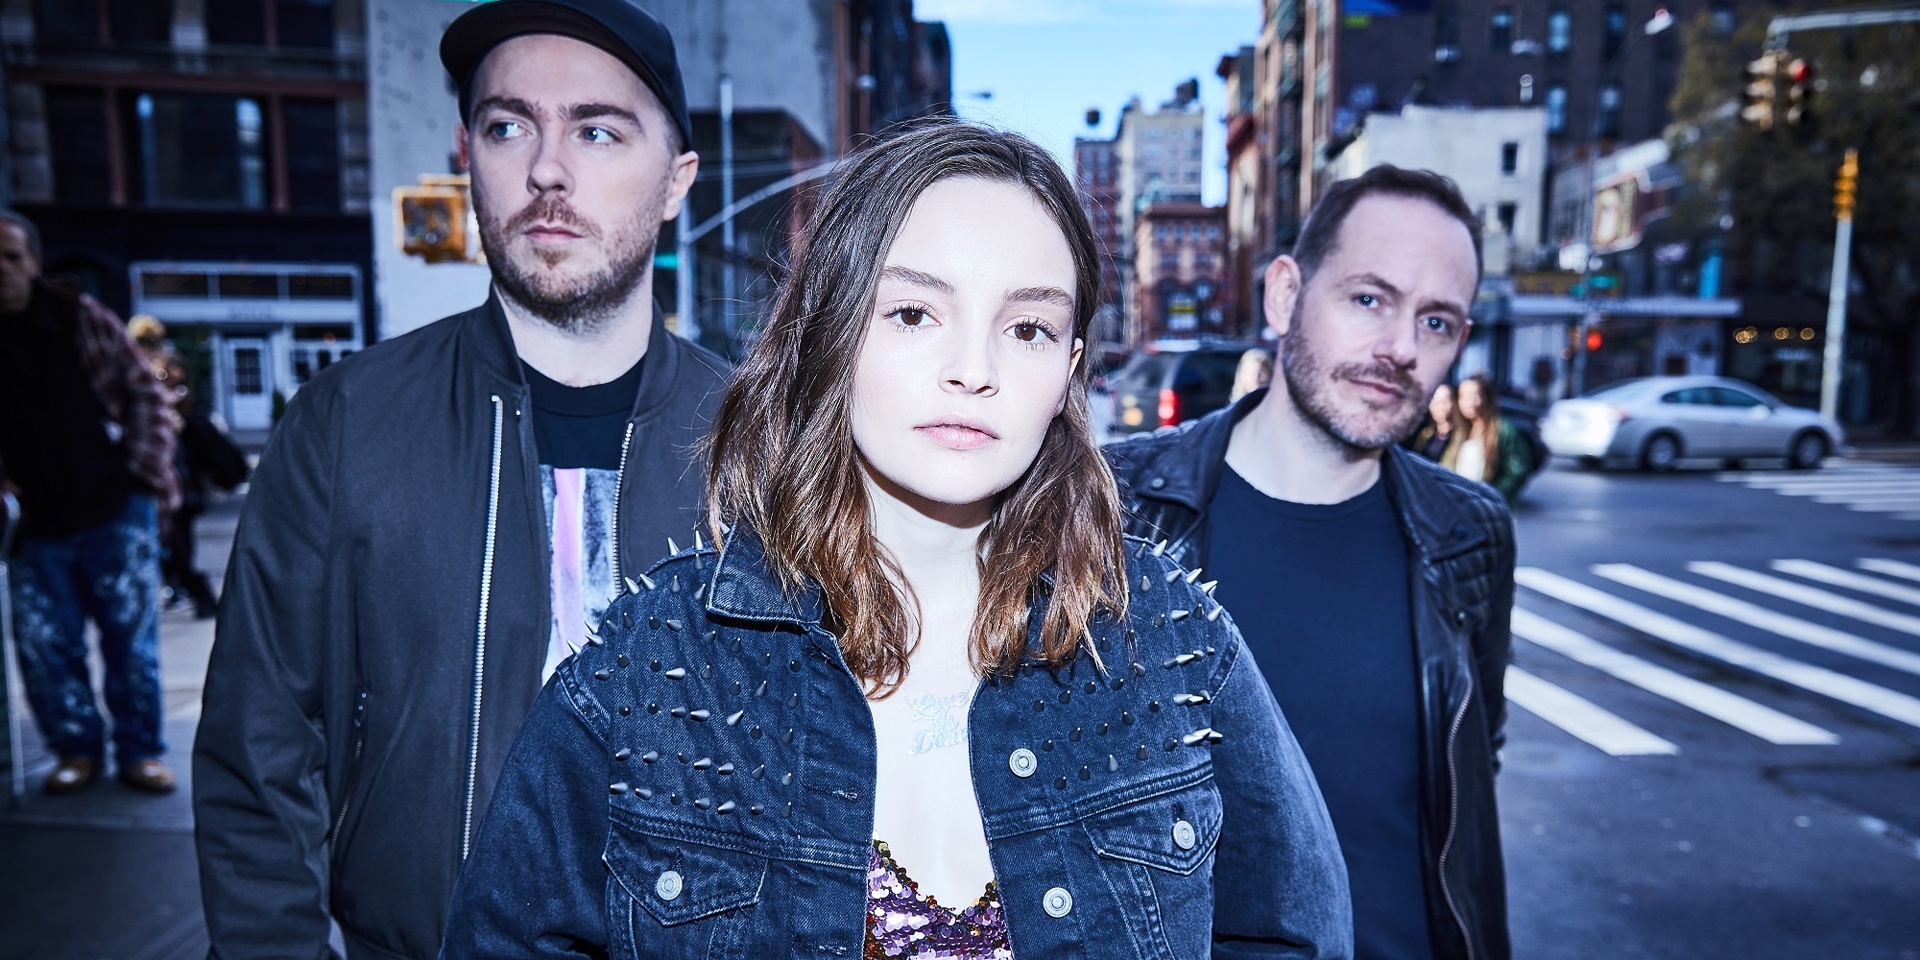 CHVRCHES' Manila concert has been canceled